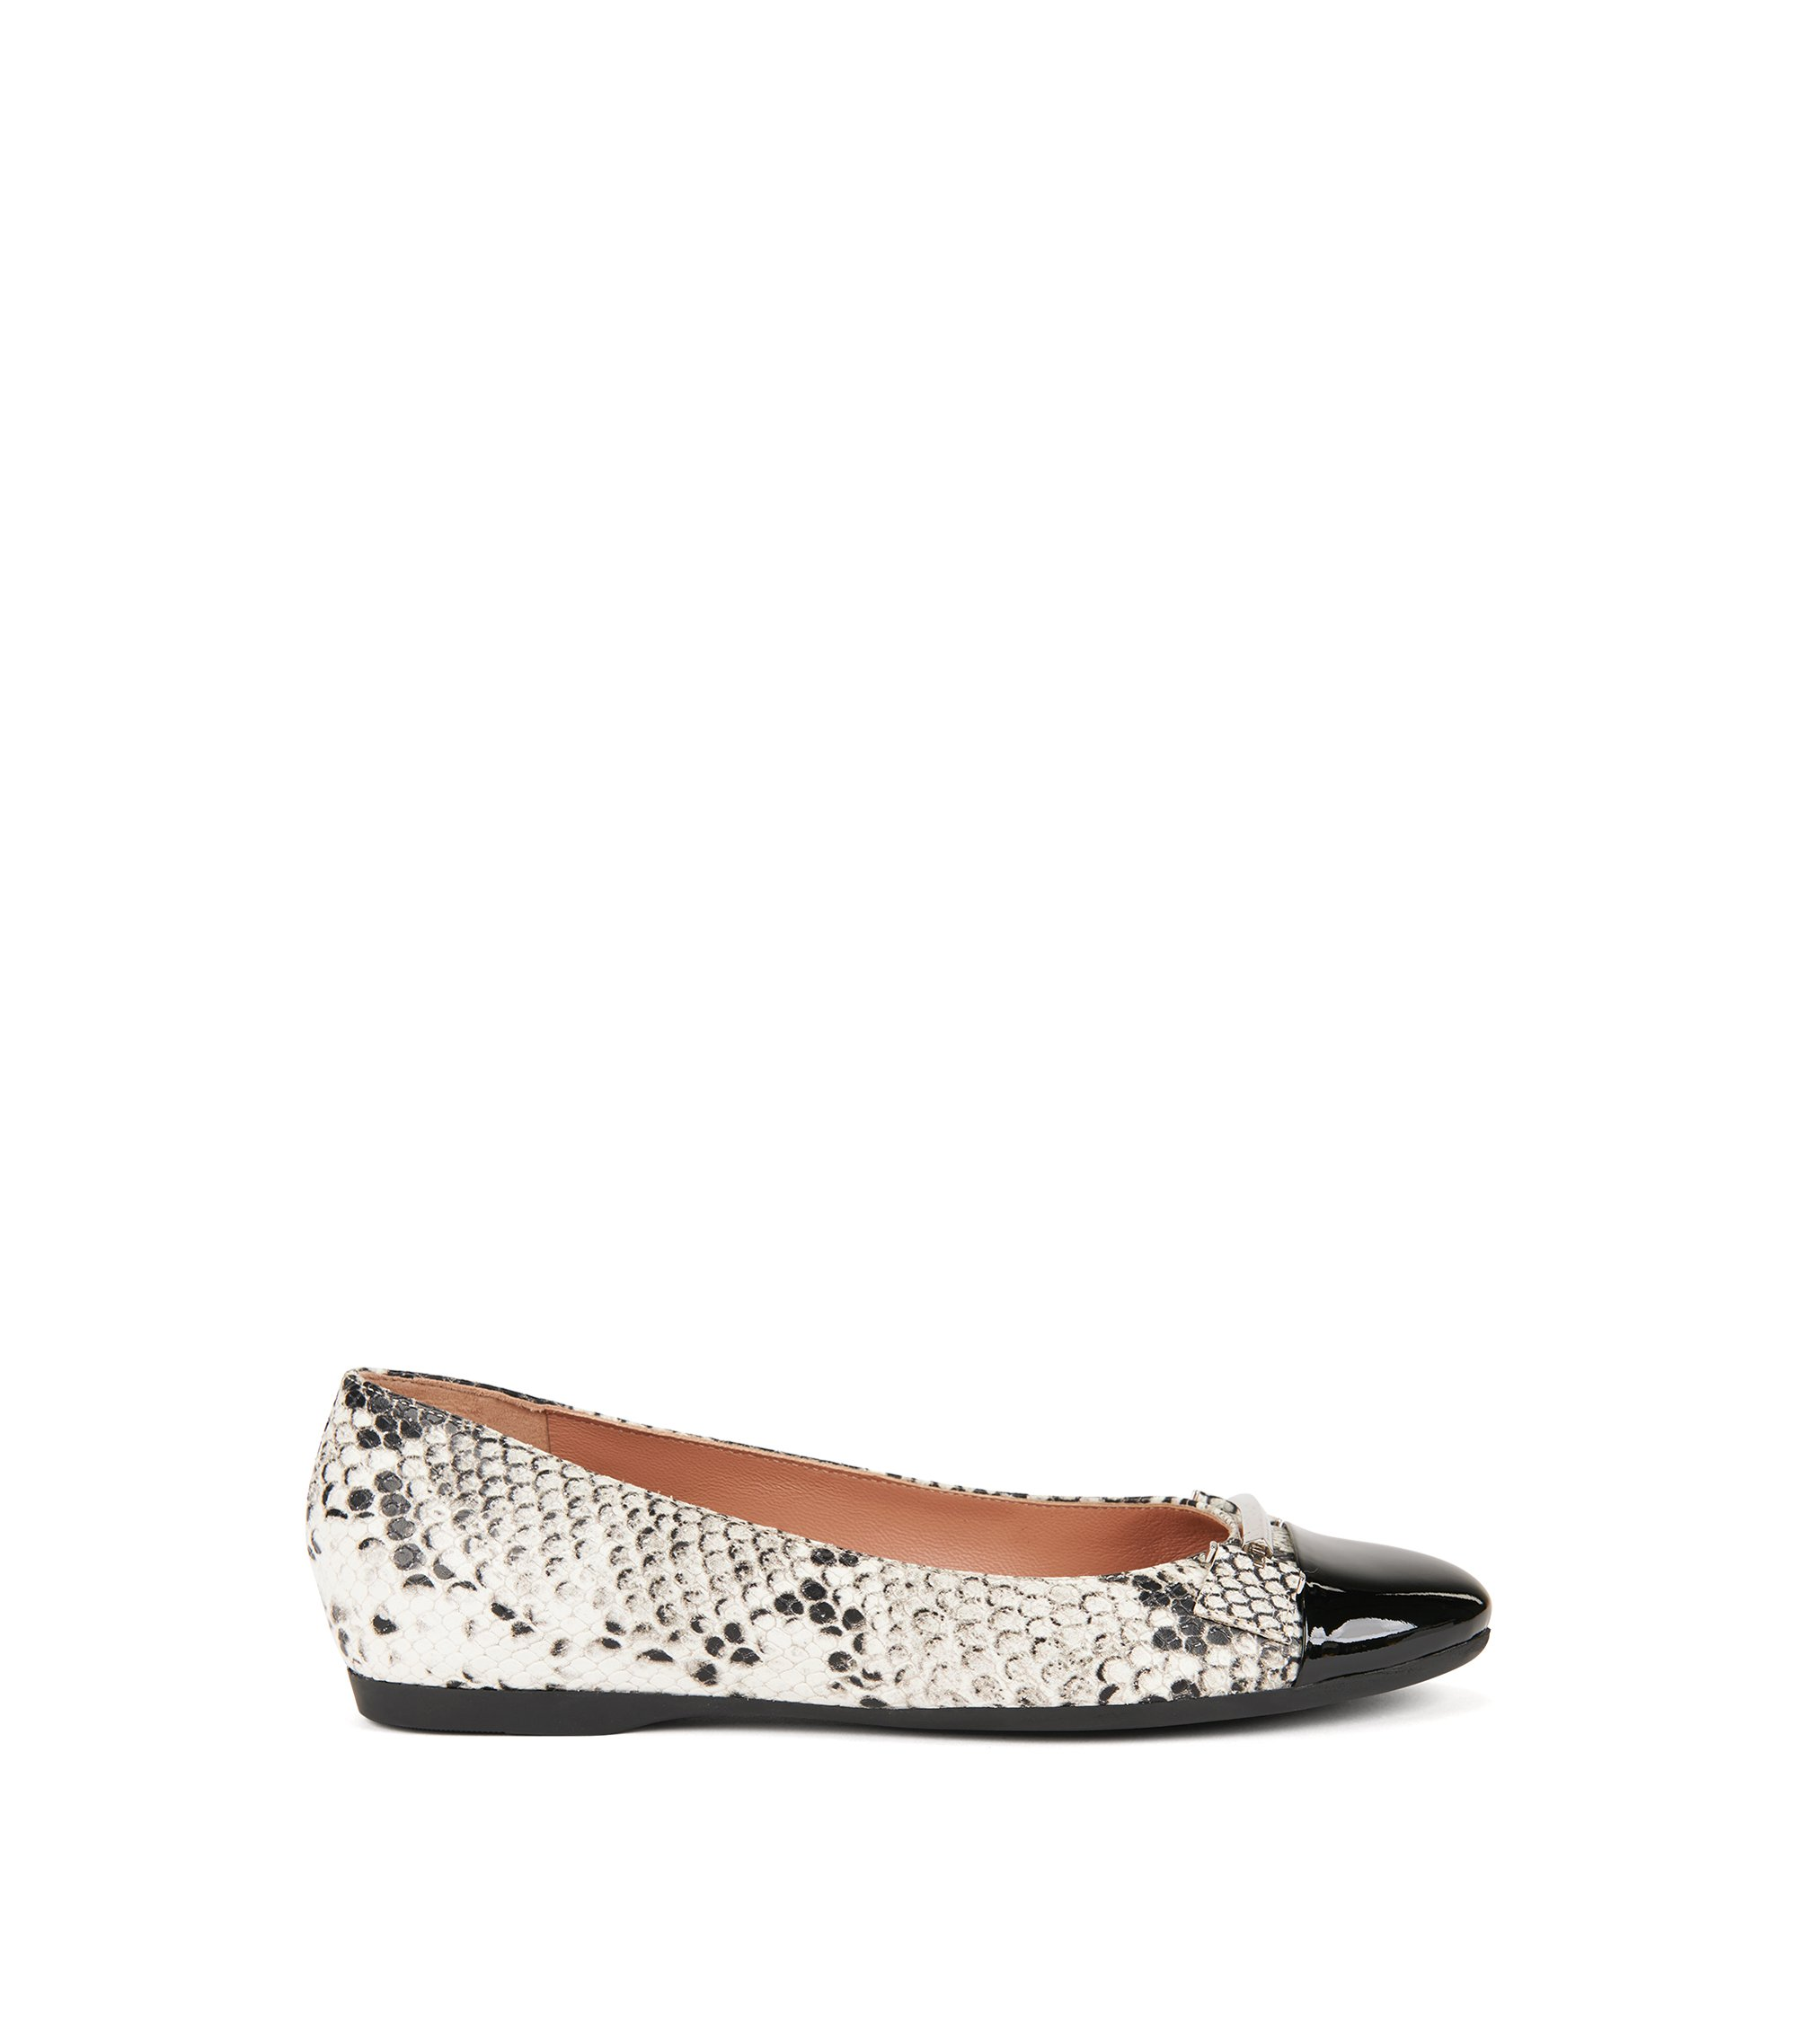 Snakeprint leather ballerina pumps with patent toe, Patterned